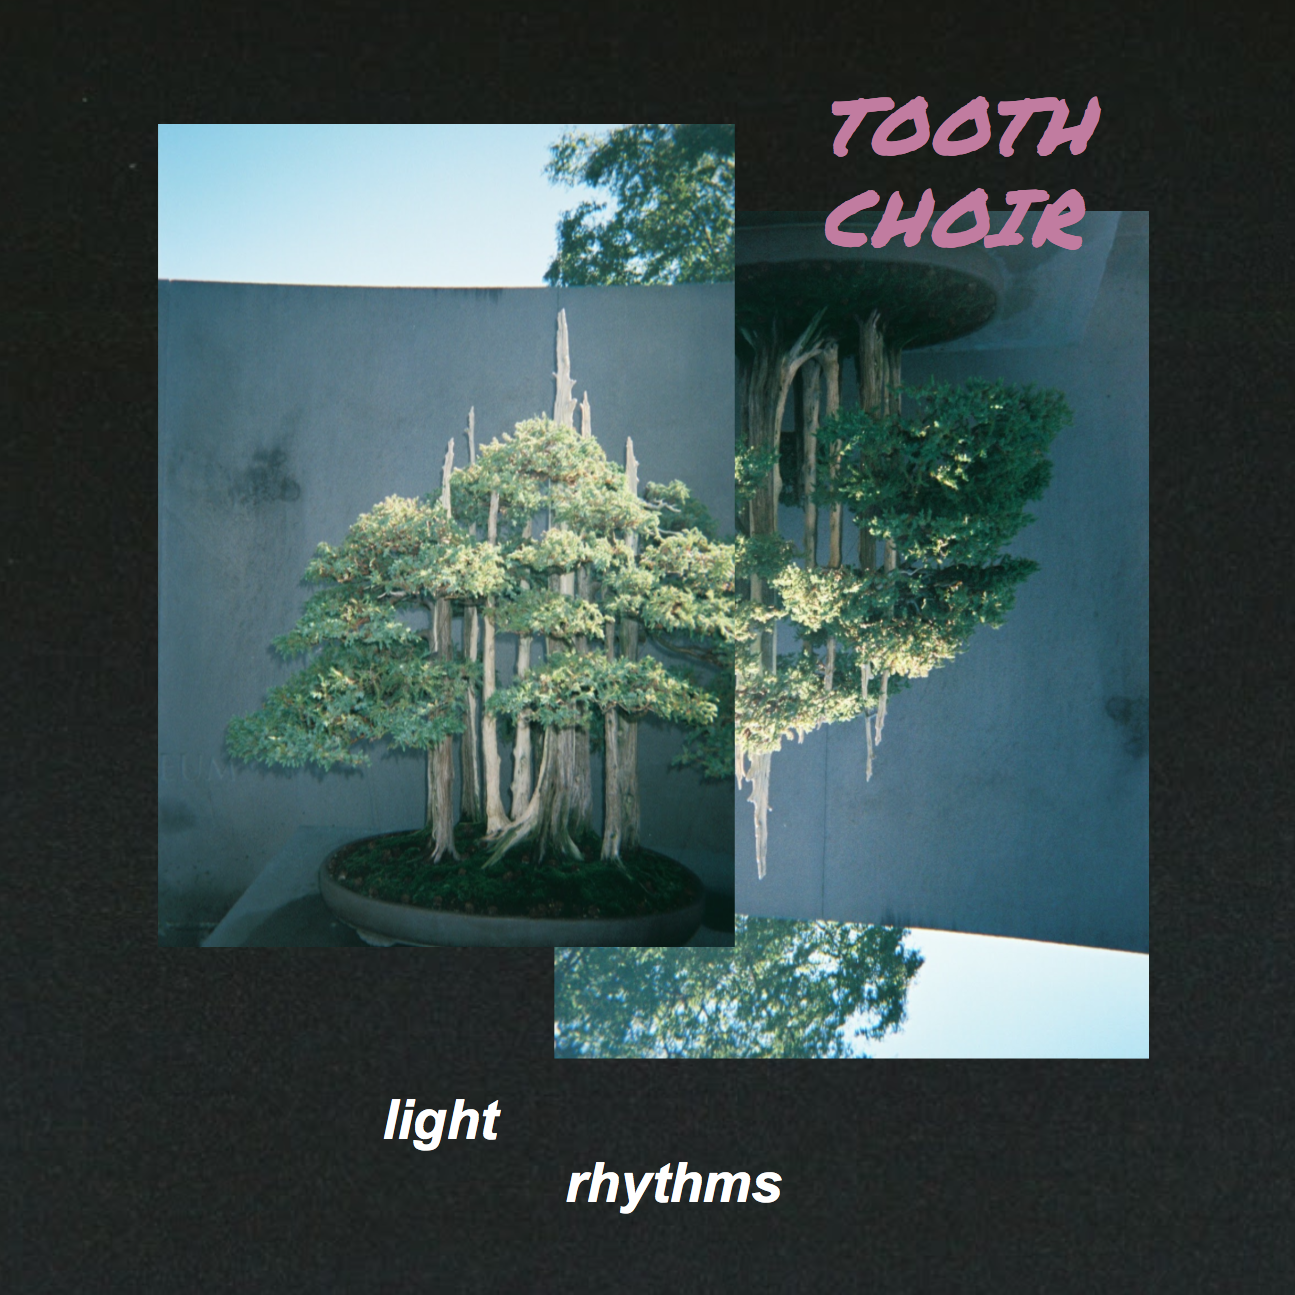 Tooth Choir - Light Rhythms